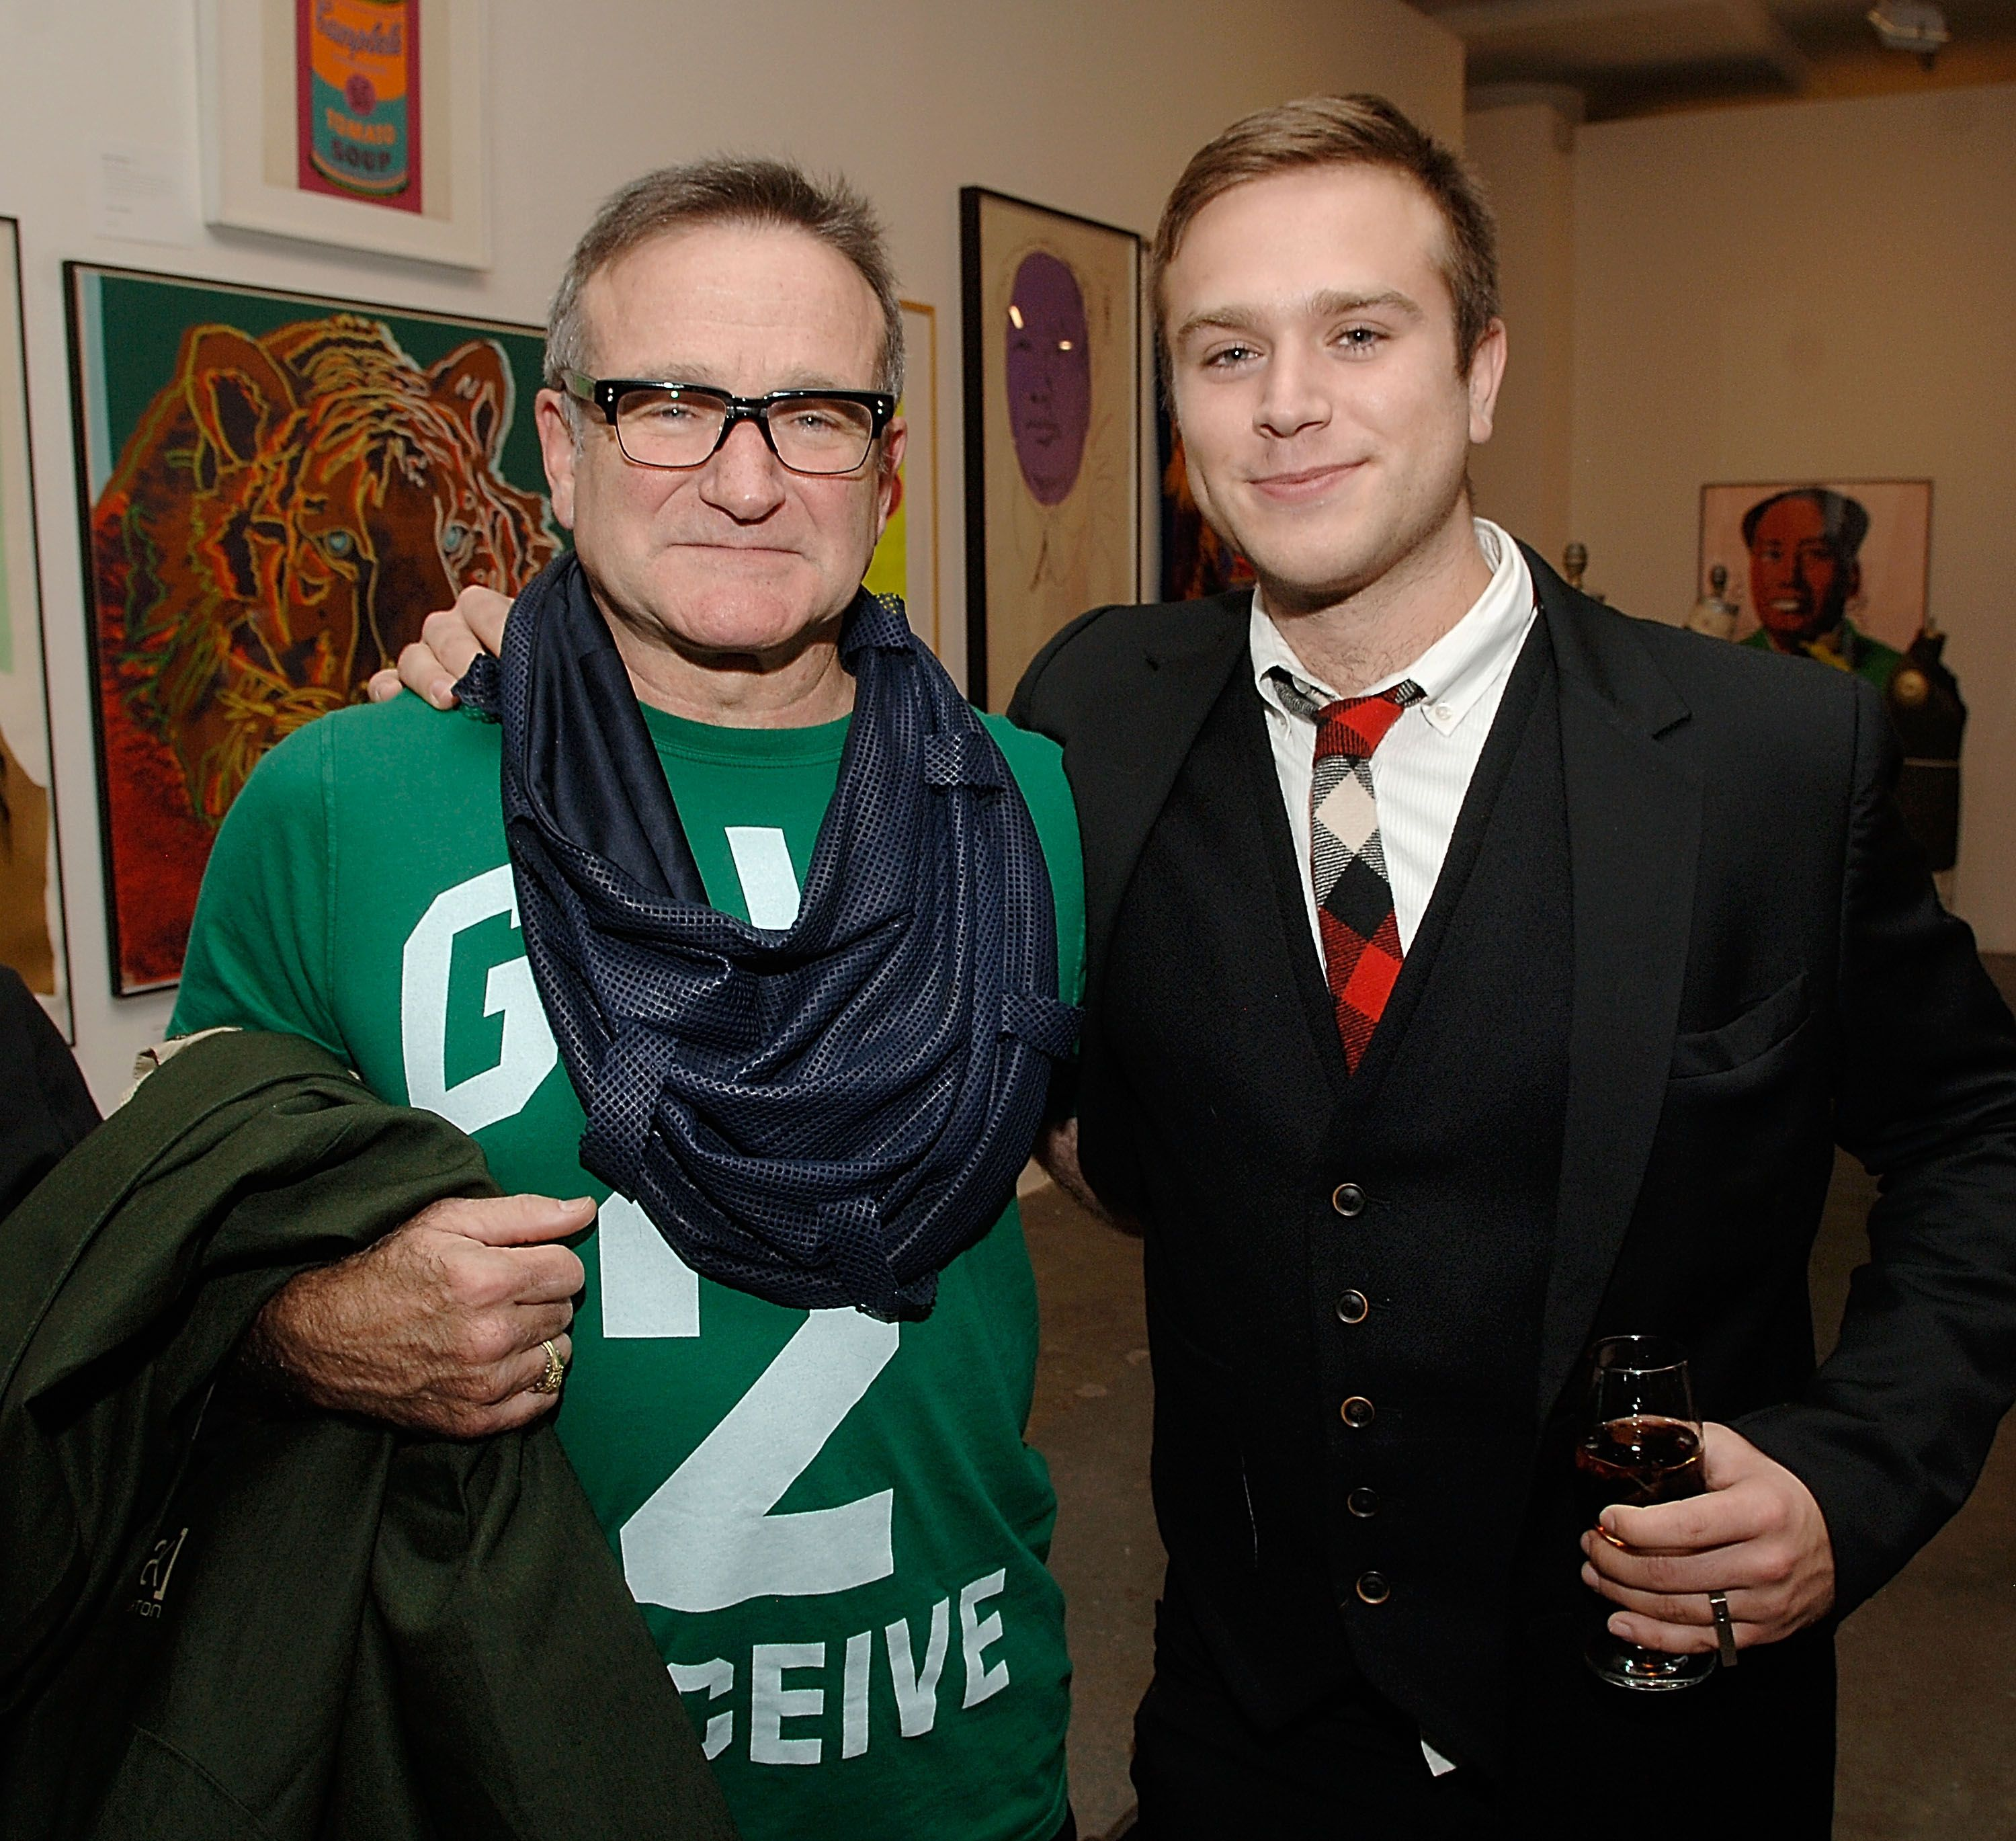 Robin Williams and Zak Williams attend the Timo Pre Fall 2009 Launch with Interview Magazine at Phillips De Pury on November 18, 2008 in New York City.   Photo: Getty Images